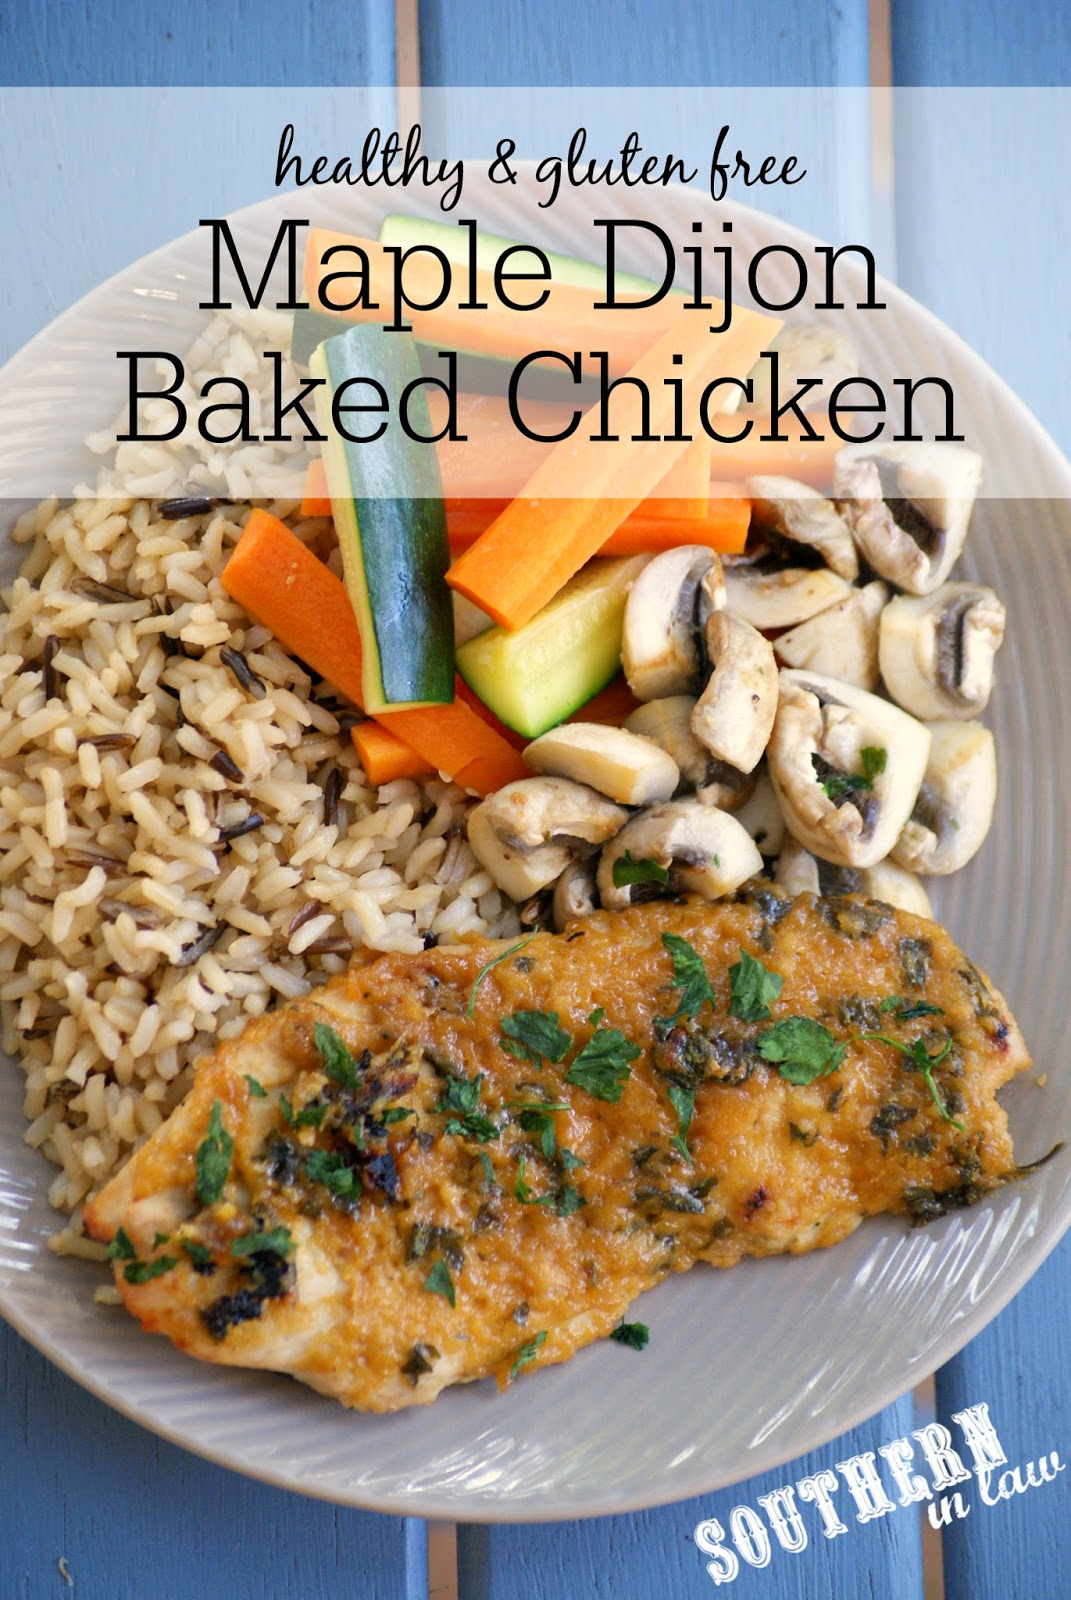 Paleo Maple Dijon Baked Chicken Recipe | low fat, gluten free, paleo, grain free, low calorie